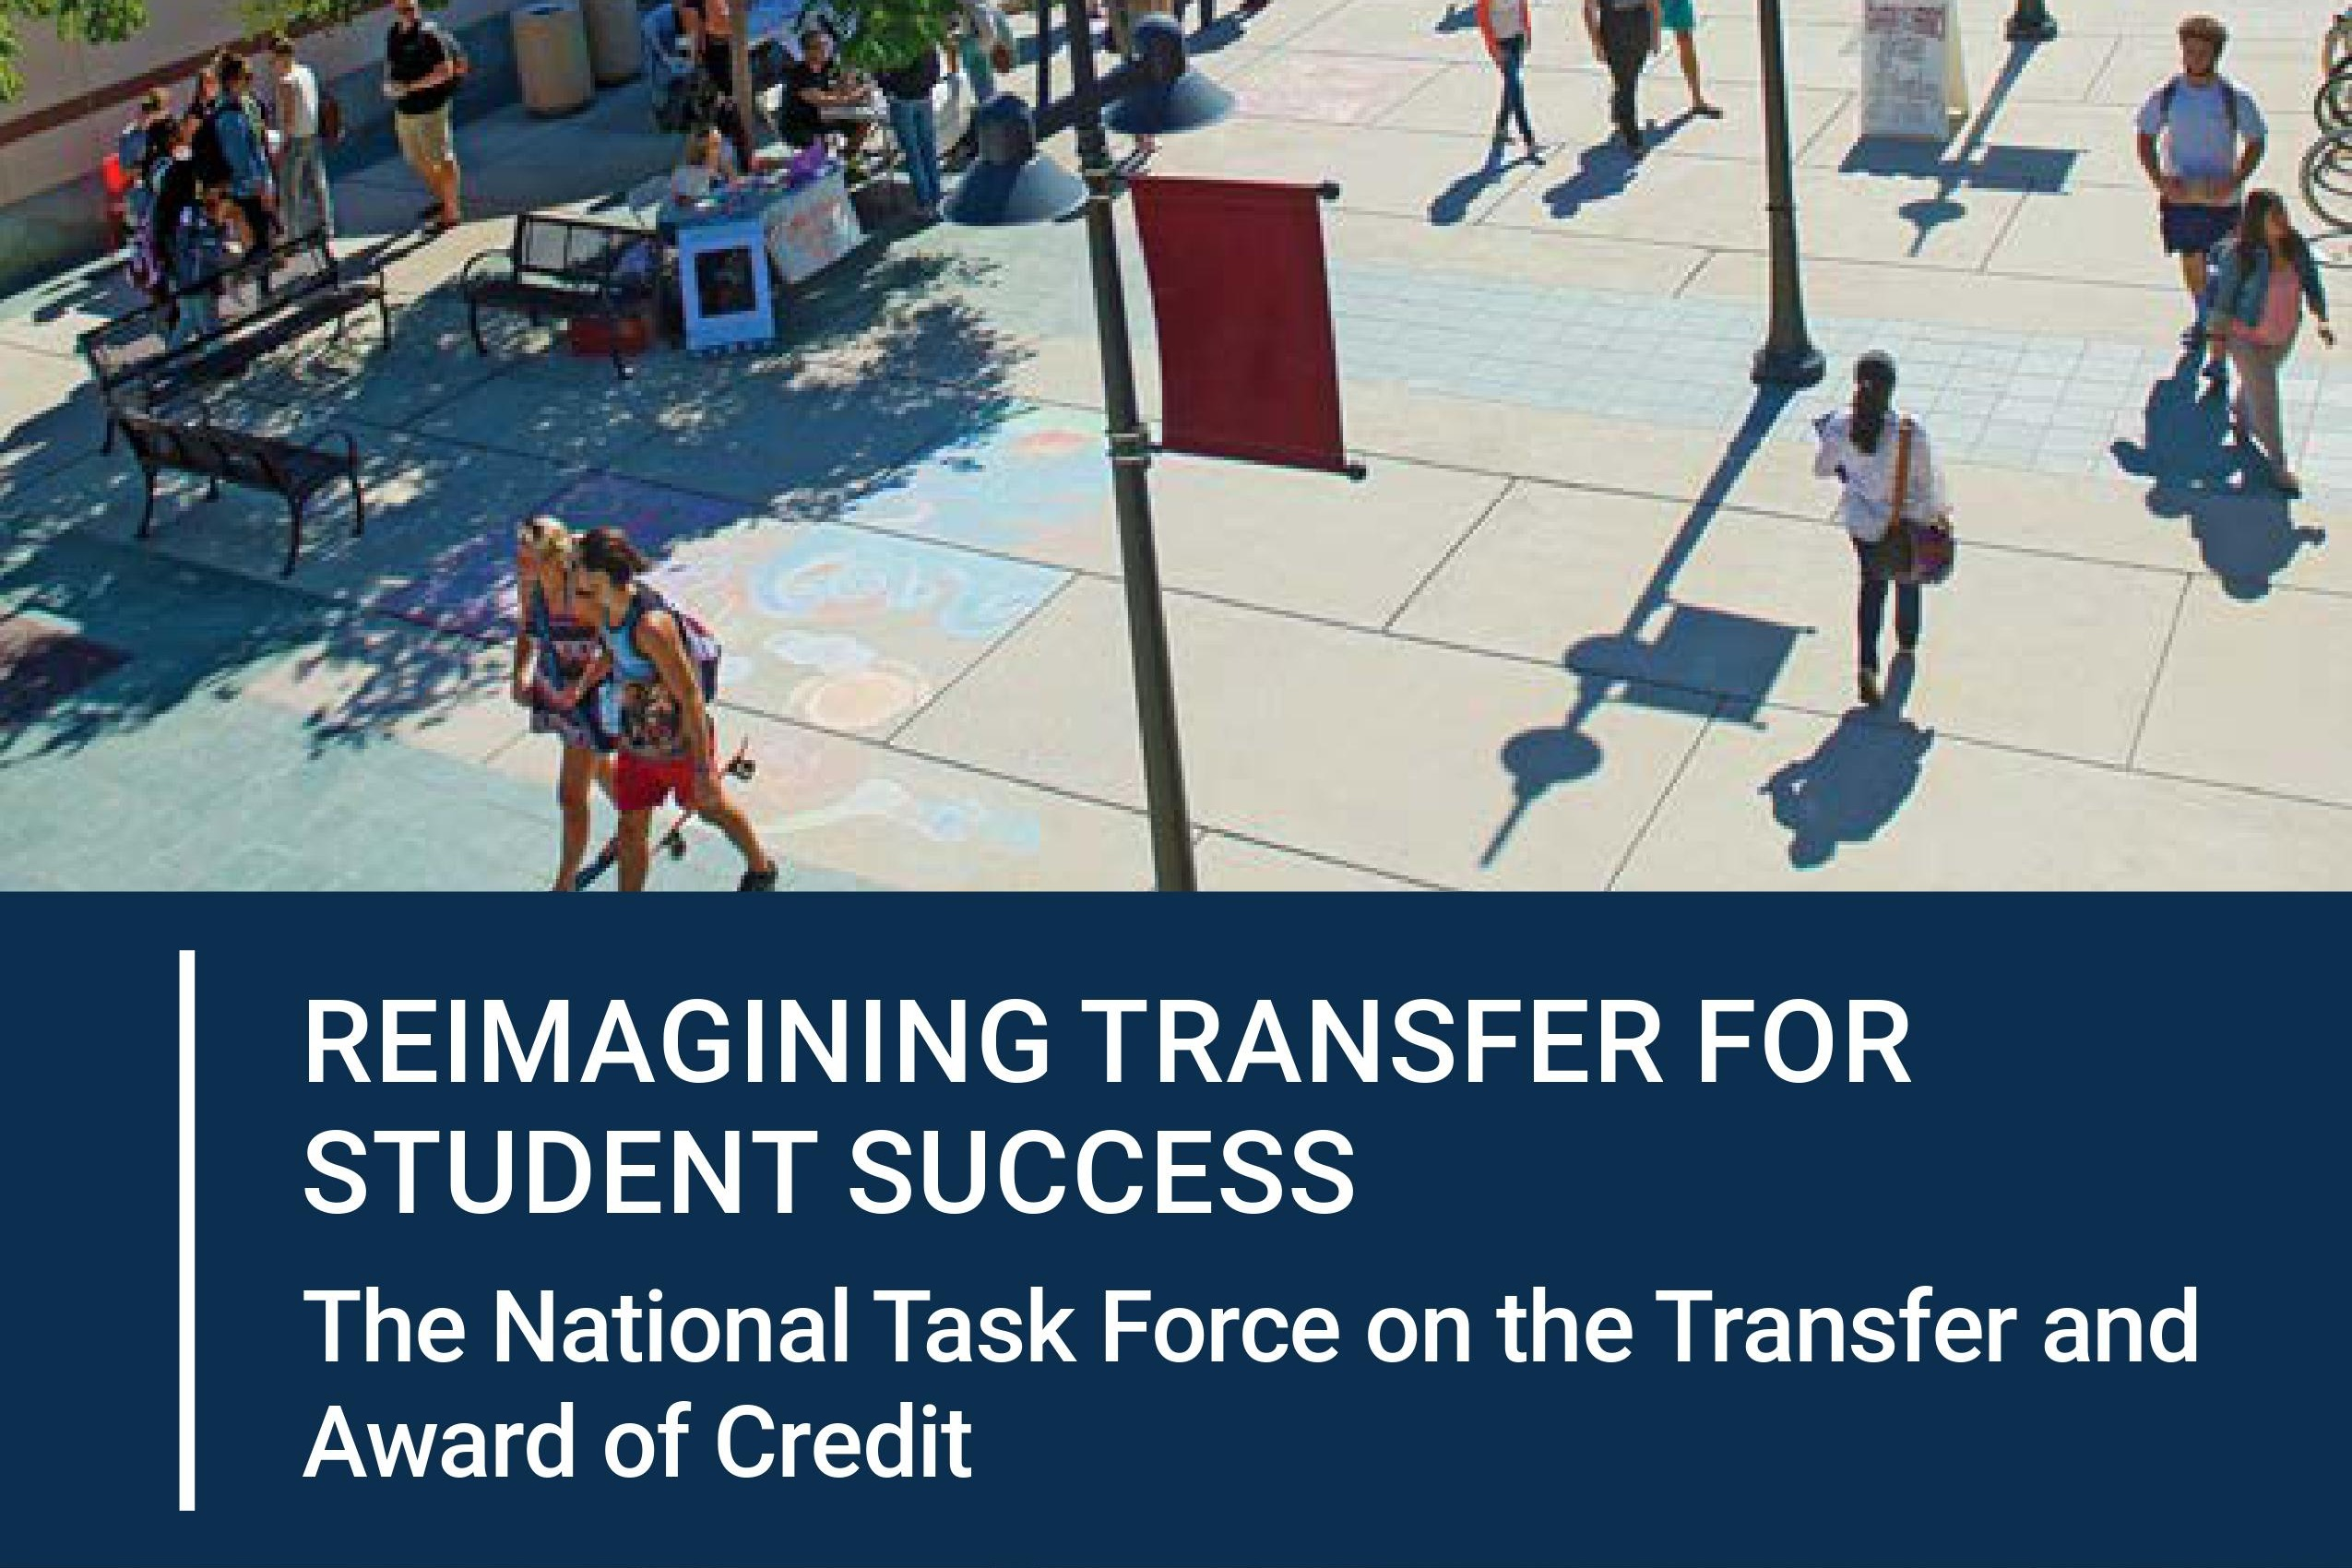 Reimagining Transfer for Student Success